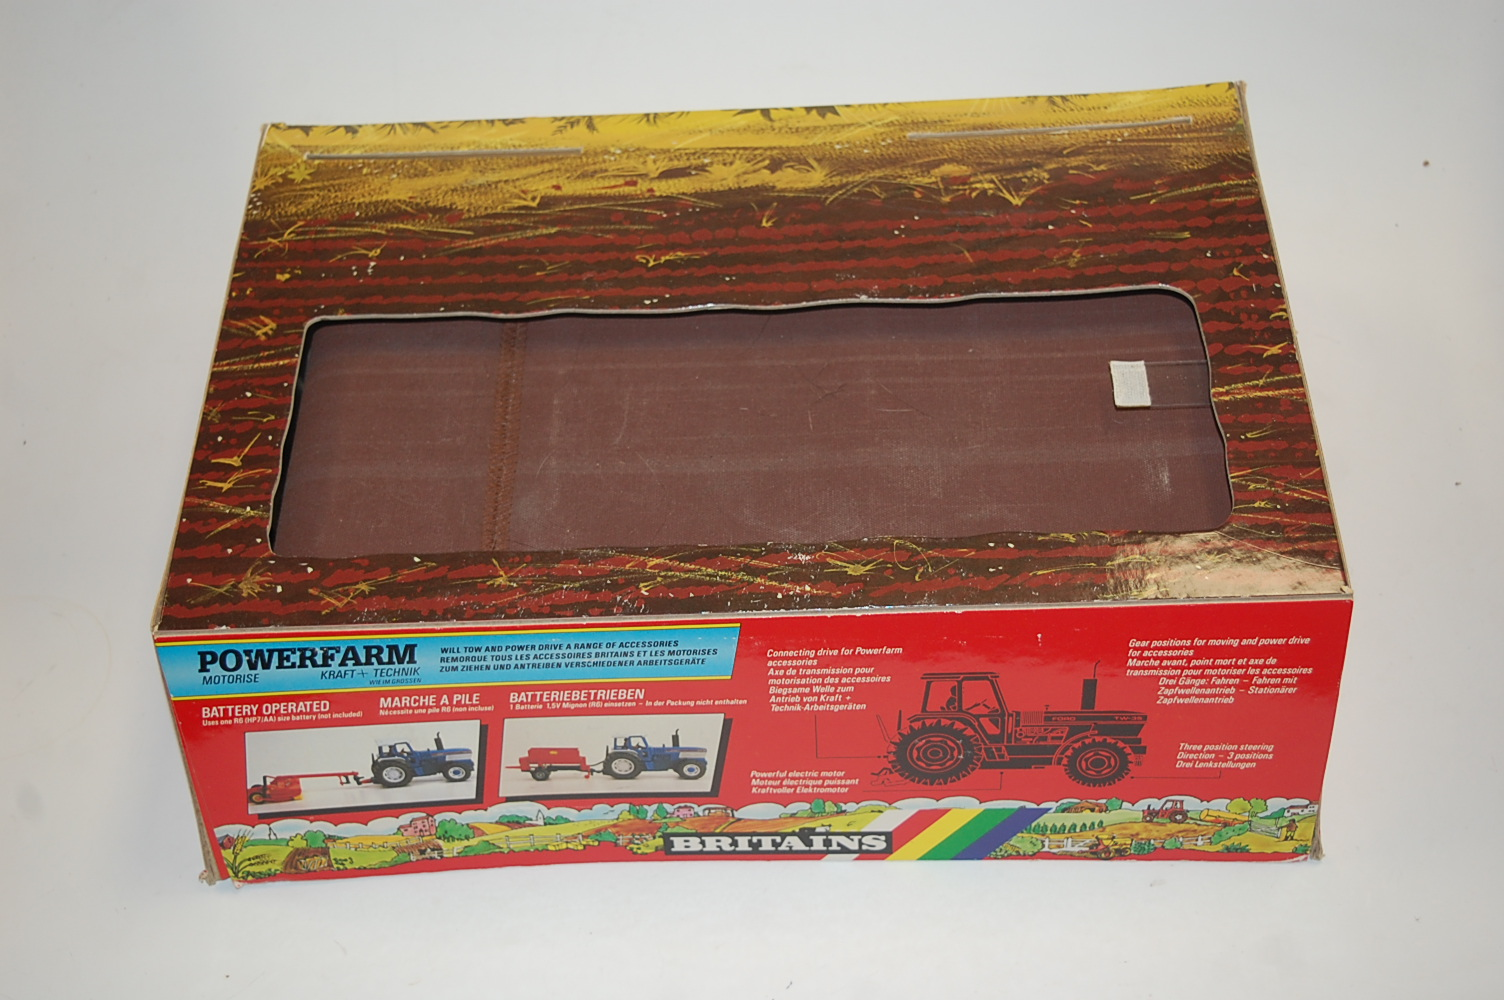 A Britains Power Farm battery operated shop display model of a rolling road, constructed in card - Image 4 of 4